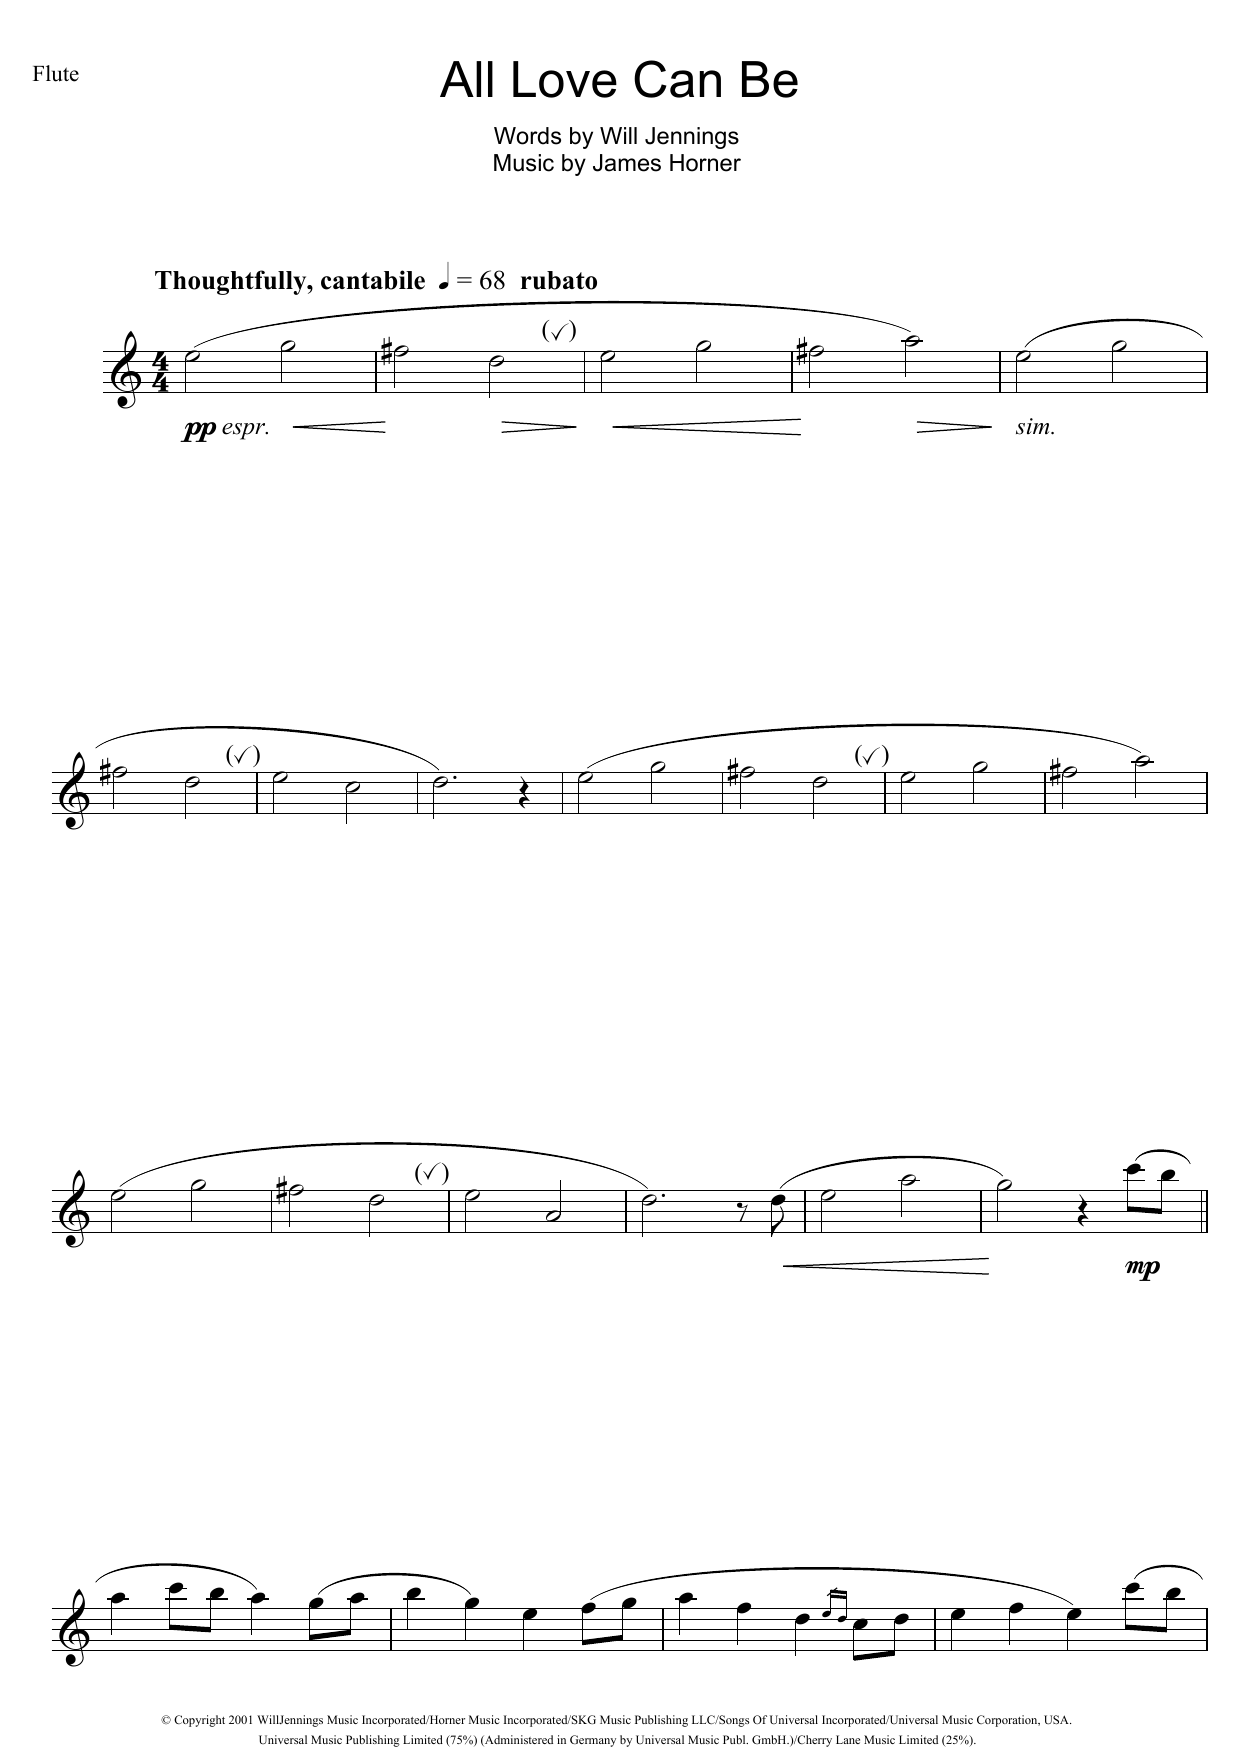 All Love Can Be (from A Beautiful Mind) Sheet Music